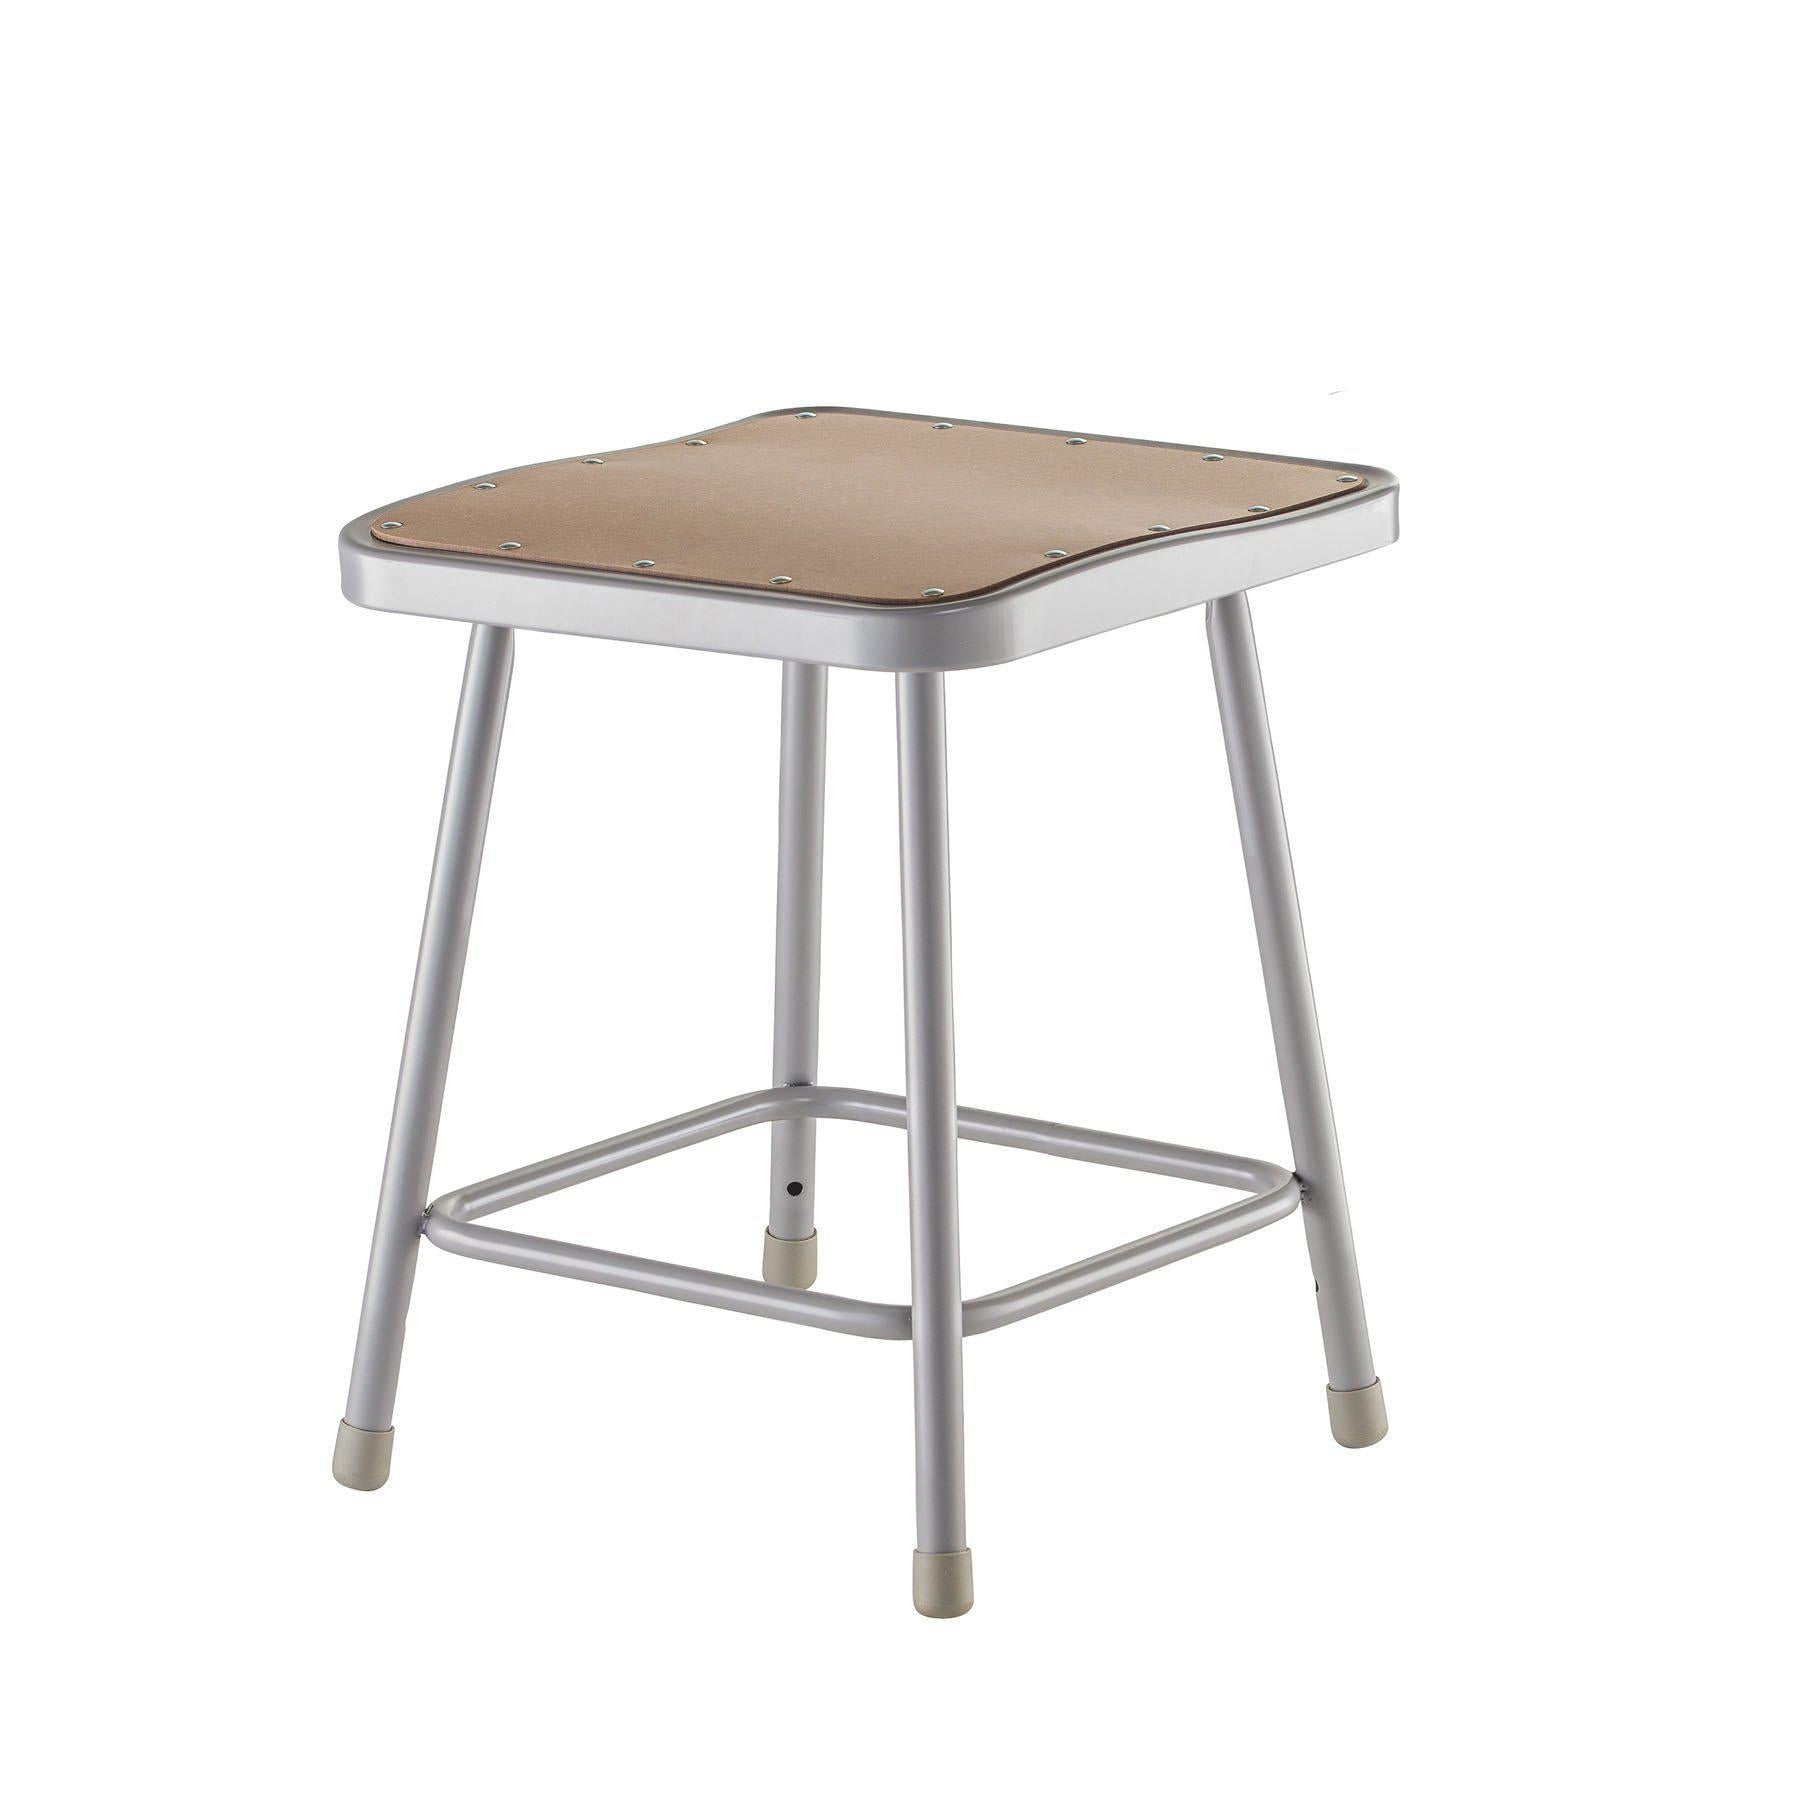 "Heavy Duty Square Seat Steel Stool, Grey-Stools-18""-"